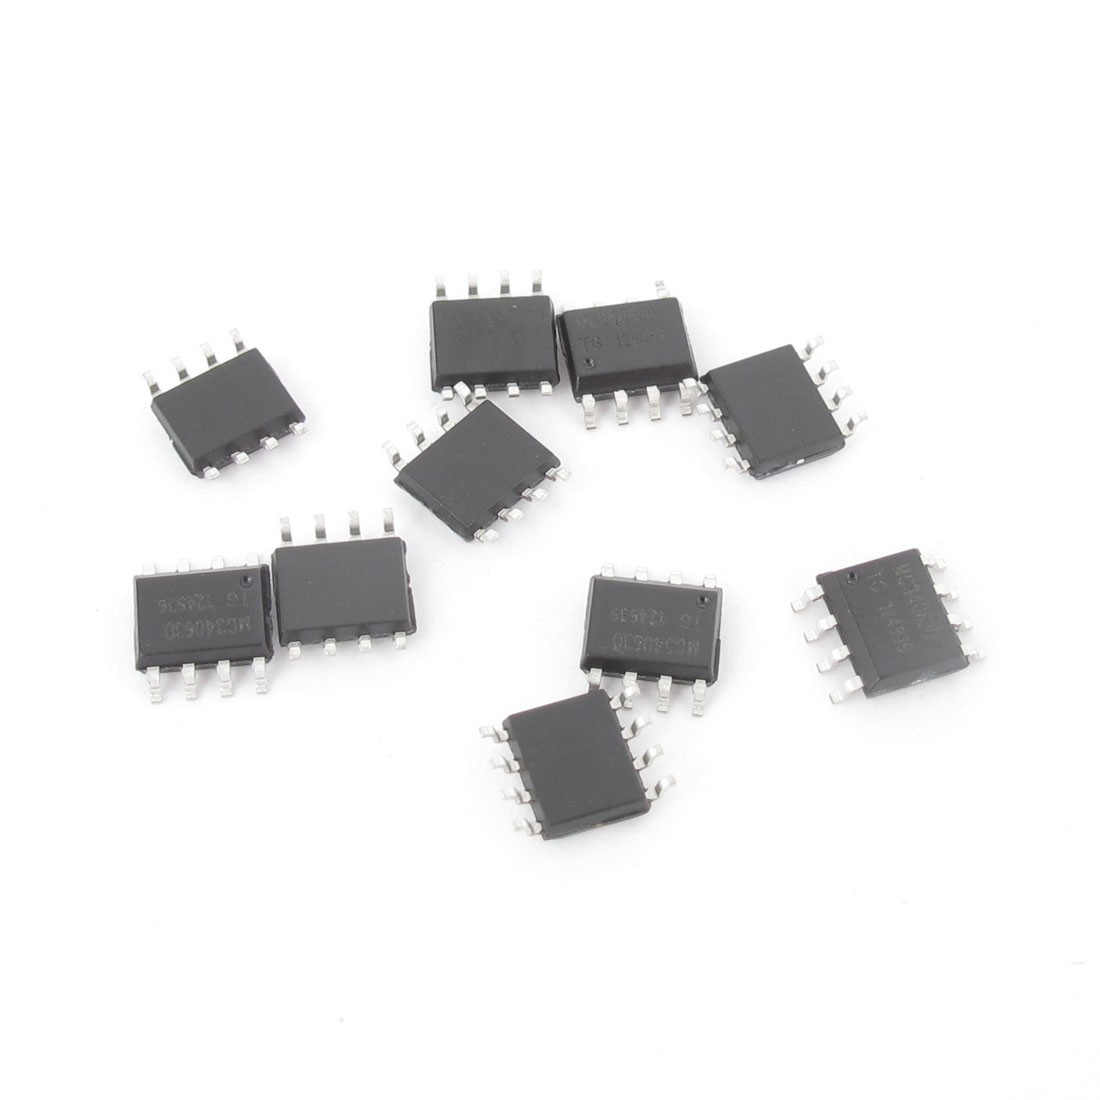 10 PCS MC34063D SOP-8 DC-to-DC Converter Control Circuits 1.5A for Voltage-Inverting Applications